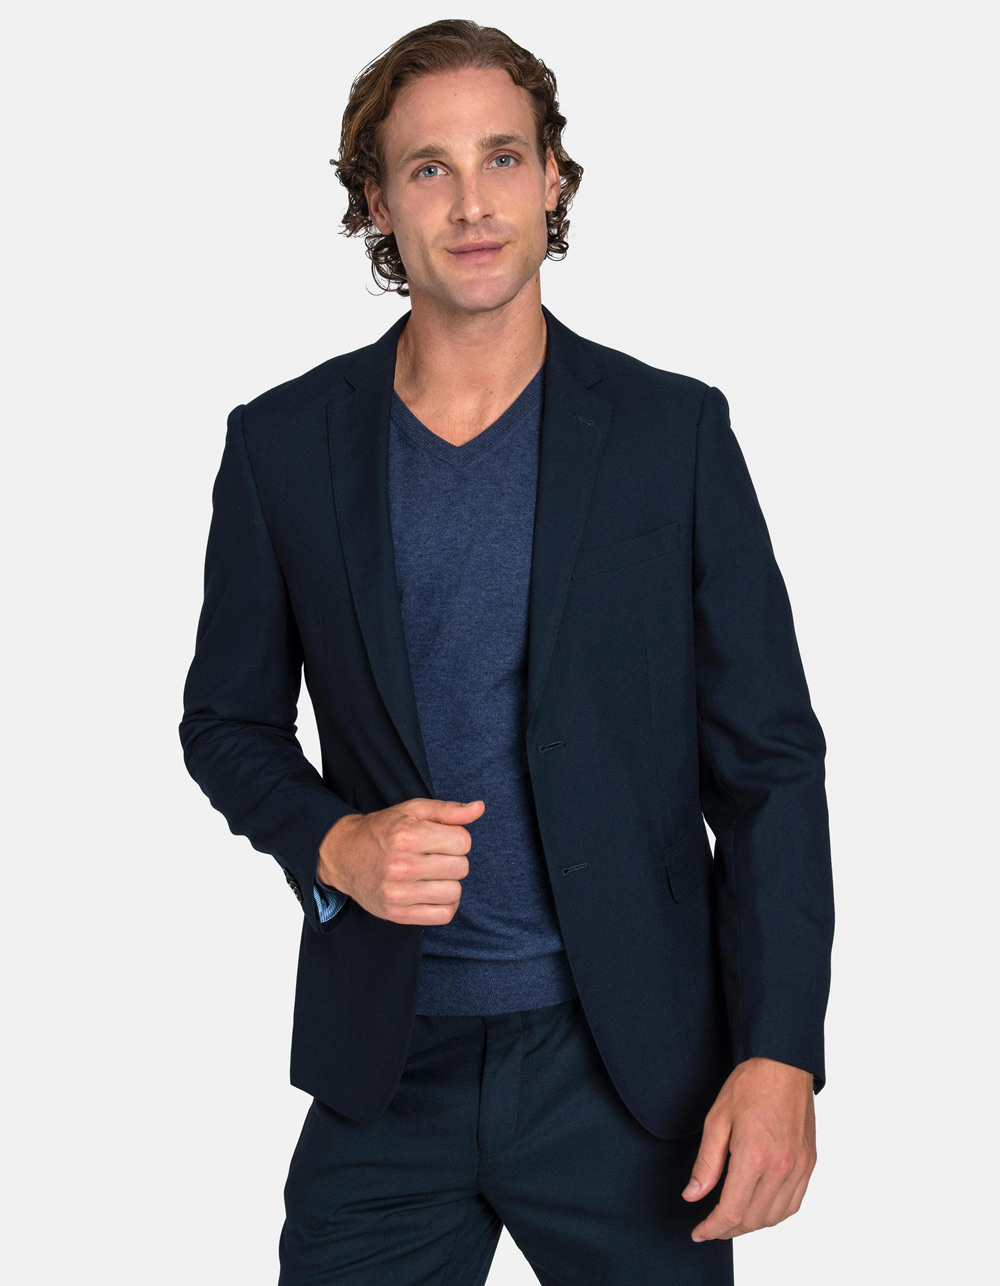 Trajes de hombre. Slim Tailored Classic Afinar resultados por: Filtro. Precio. Close filter: Precio 60 € - 80 € Más de 80 € Eliminar Aplicar. Talla. Close filter: Talla M L XL 38 40 42 44 46 48 50 52 54 56 58 60 62 Eliminar Aplicar. Color. Close filter: Color NEGRO MARINO AZUL GRIS Eliminar Aplicar. FIT. .